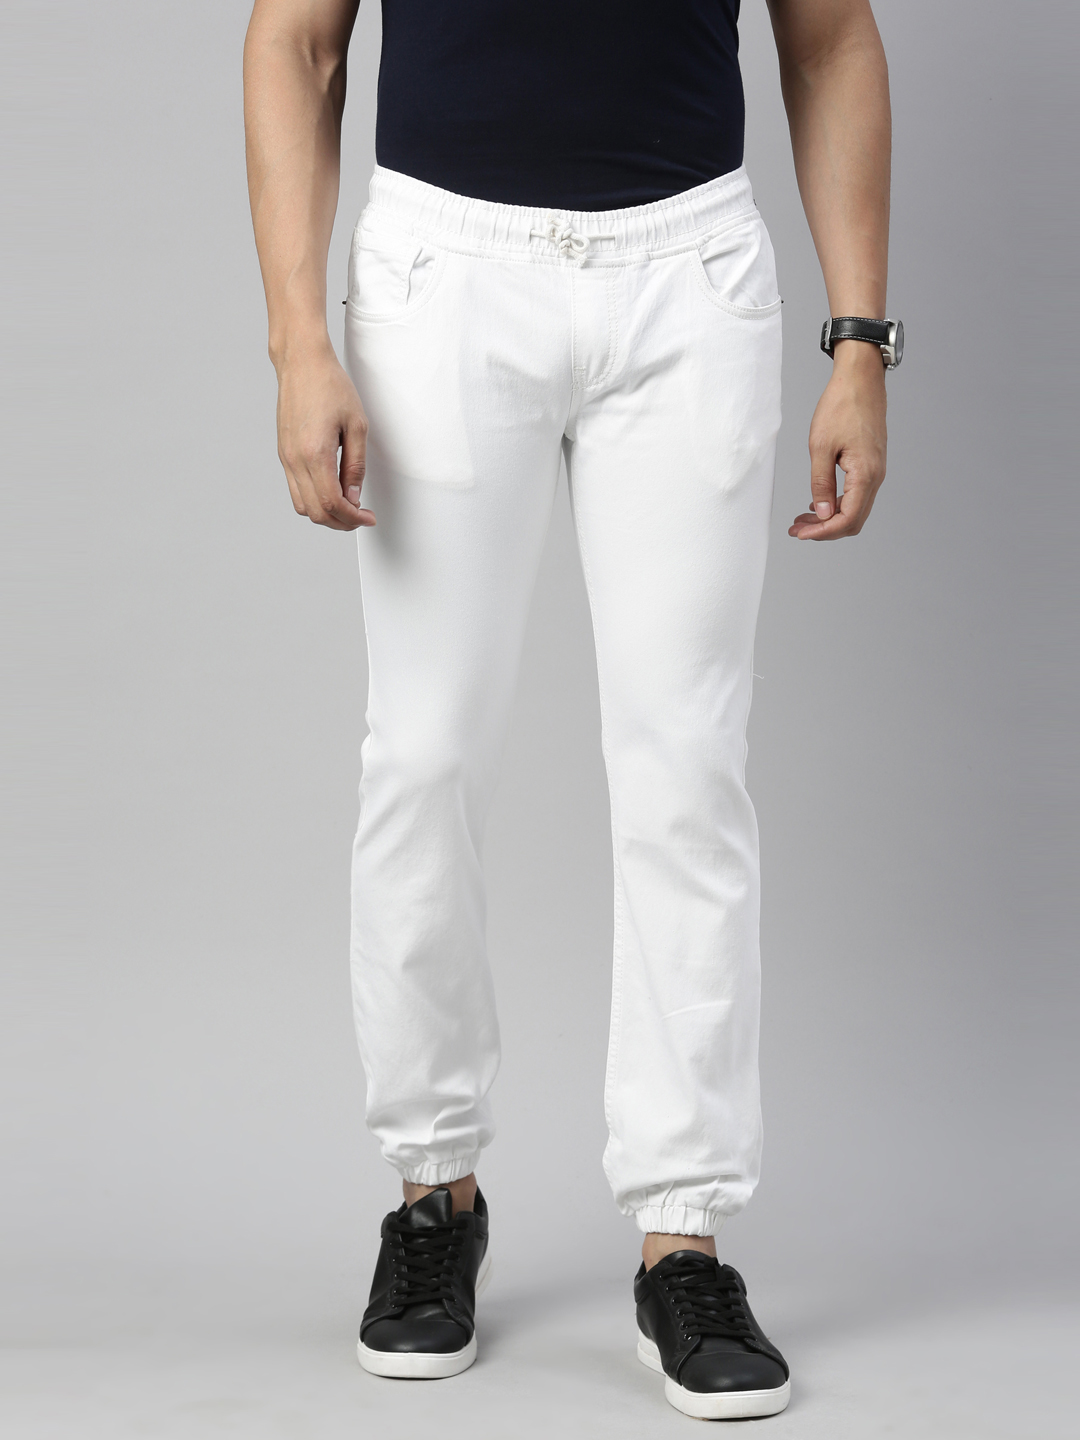 Chennis | Chennis Mens Casual Jeans